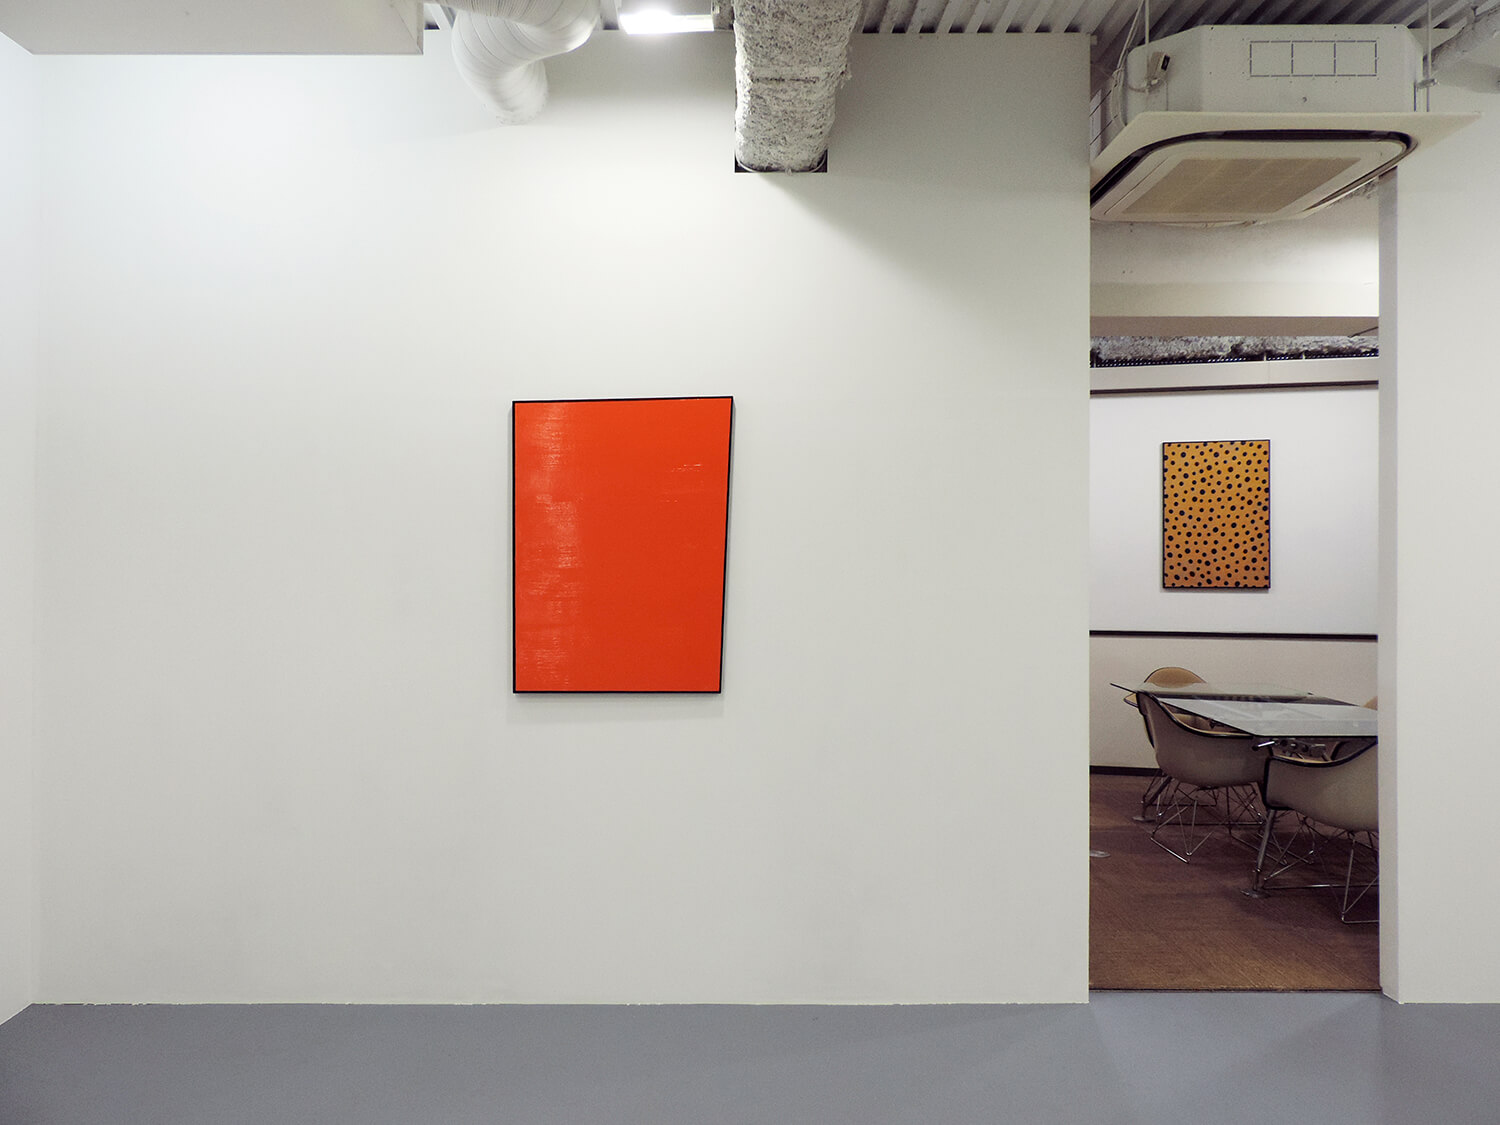 Installation View 5